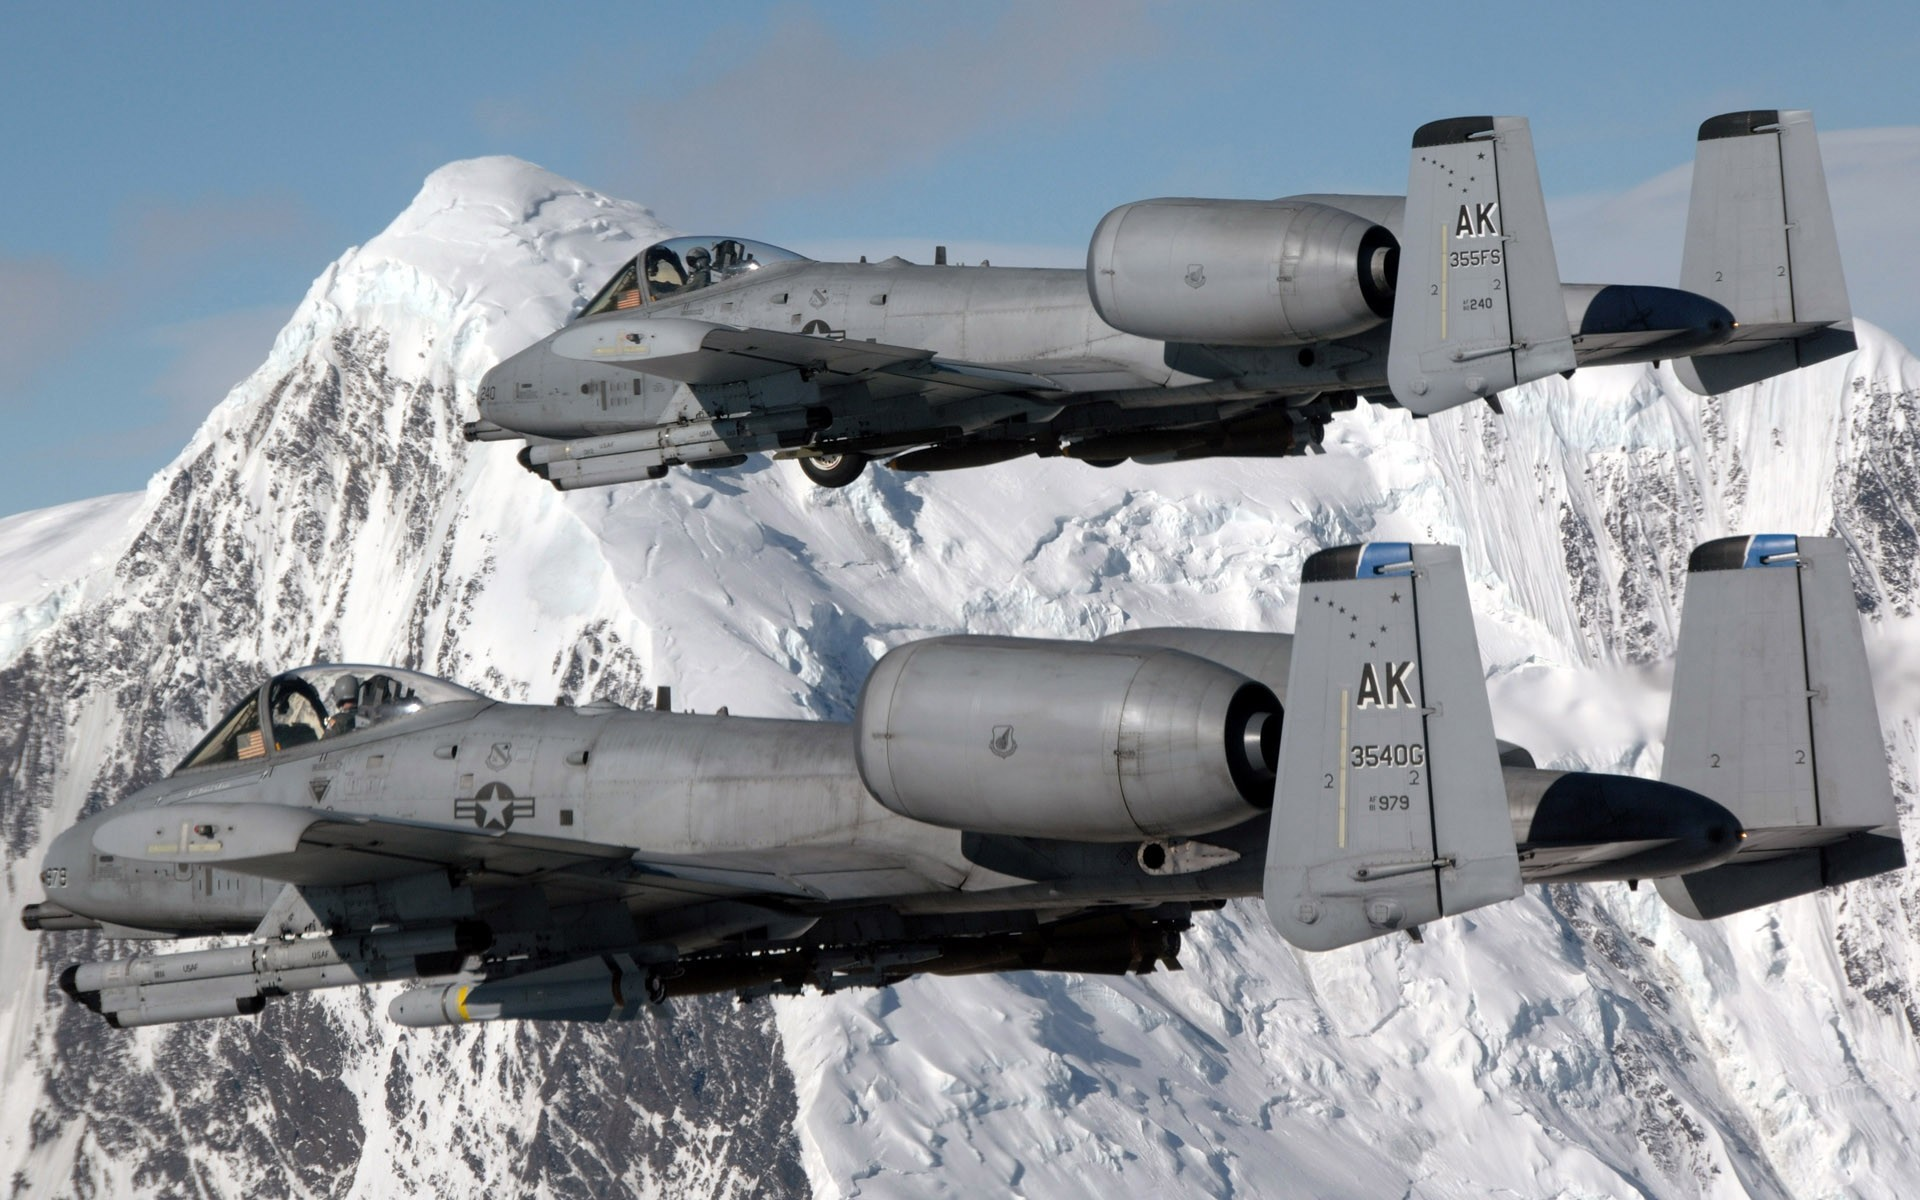 Aircraft War A-10 Thunderbolt HD Wallpaper